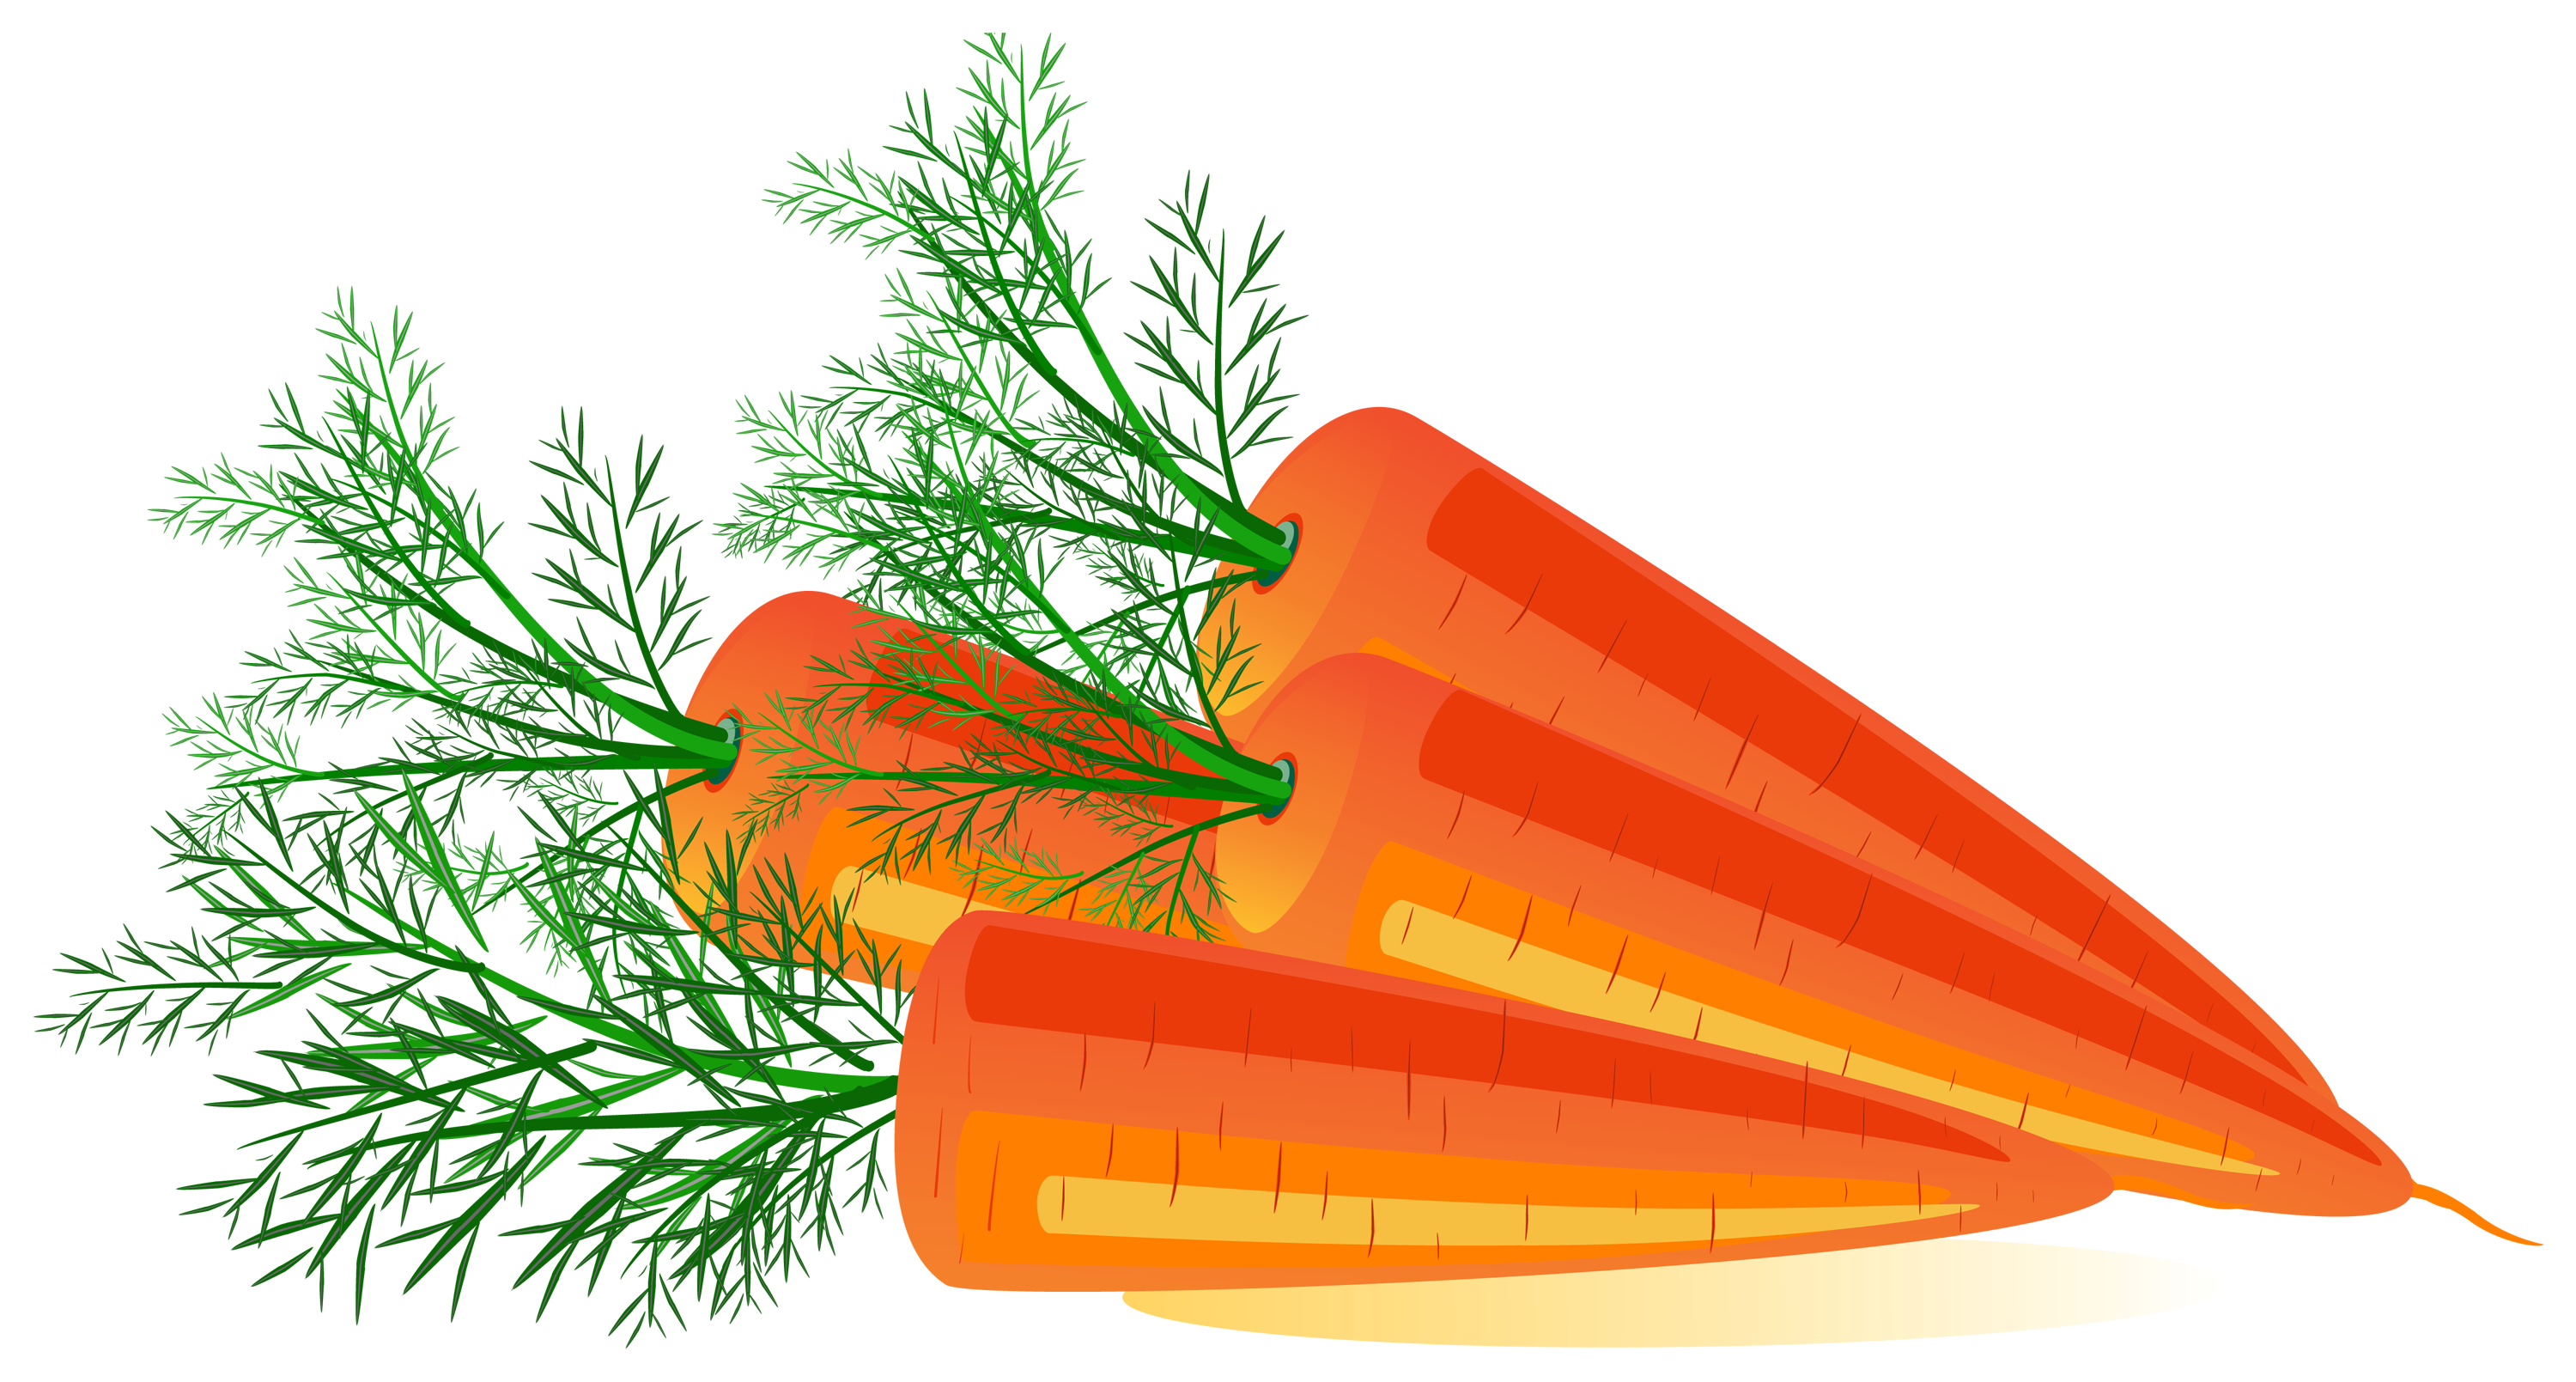 Image free download. Clipart png carrot